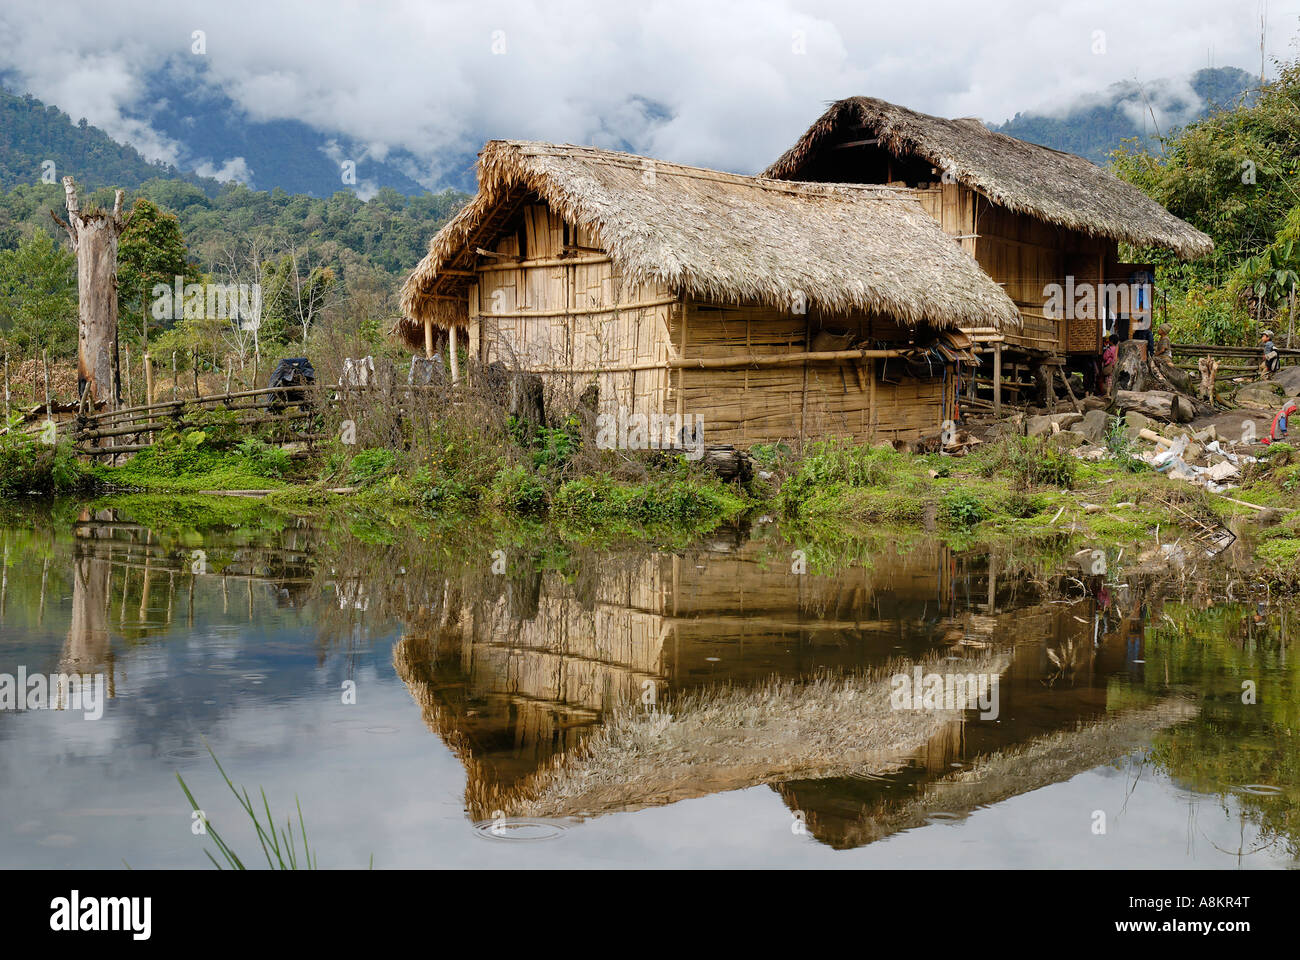 Einfaches Holzhaus Traditional Rawang House, Kachin State, Myanmar Stock